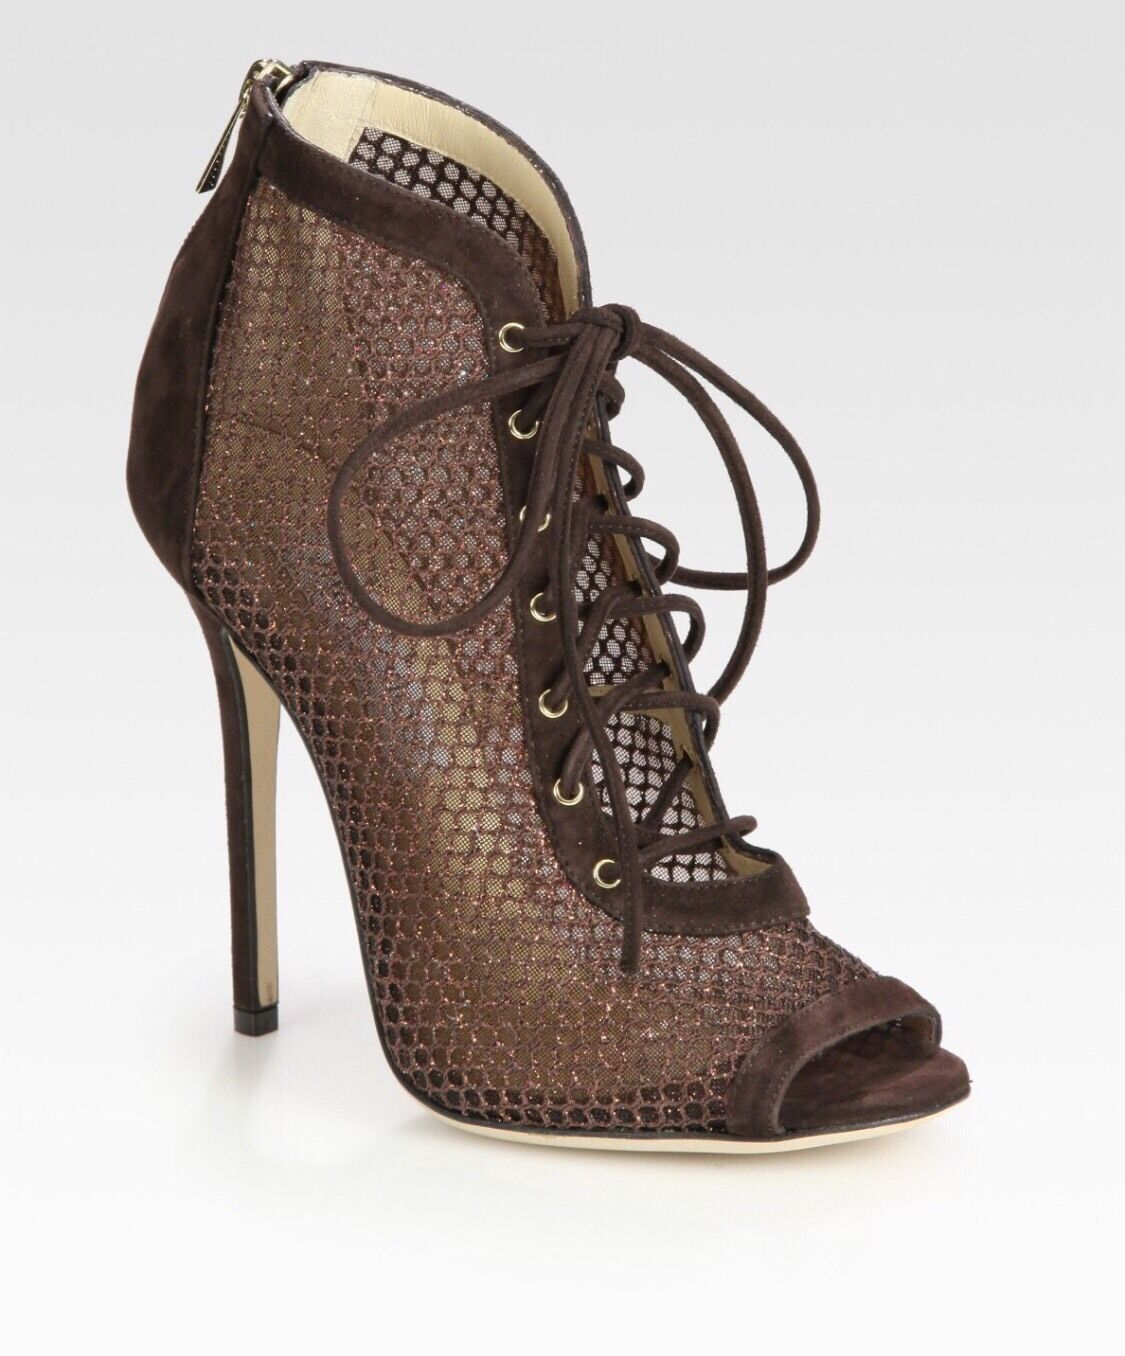 Jimmy Choo Brown Tegan Lace Up Suede and Glitter coated Mesh Peep Toe shoes.